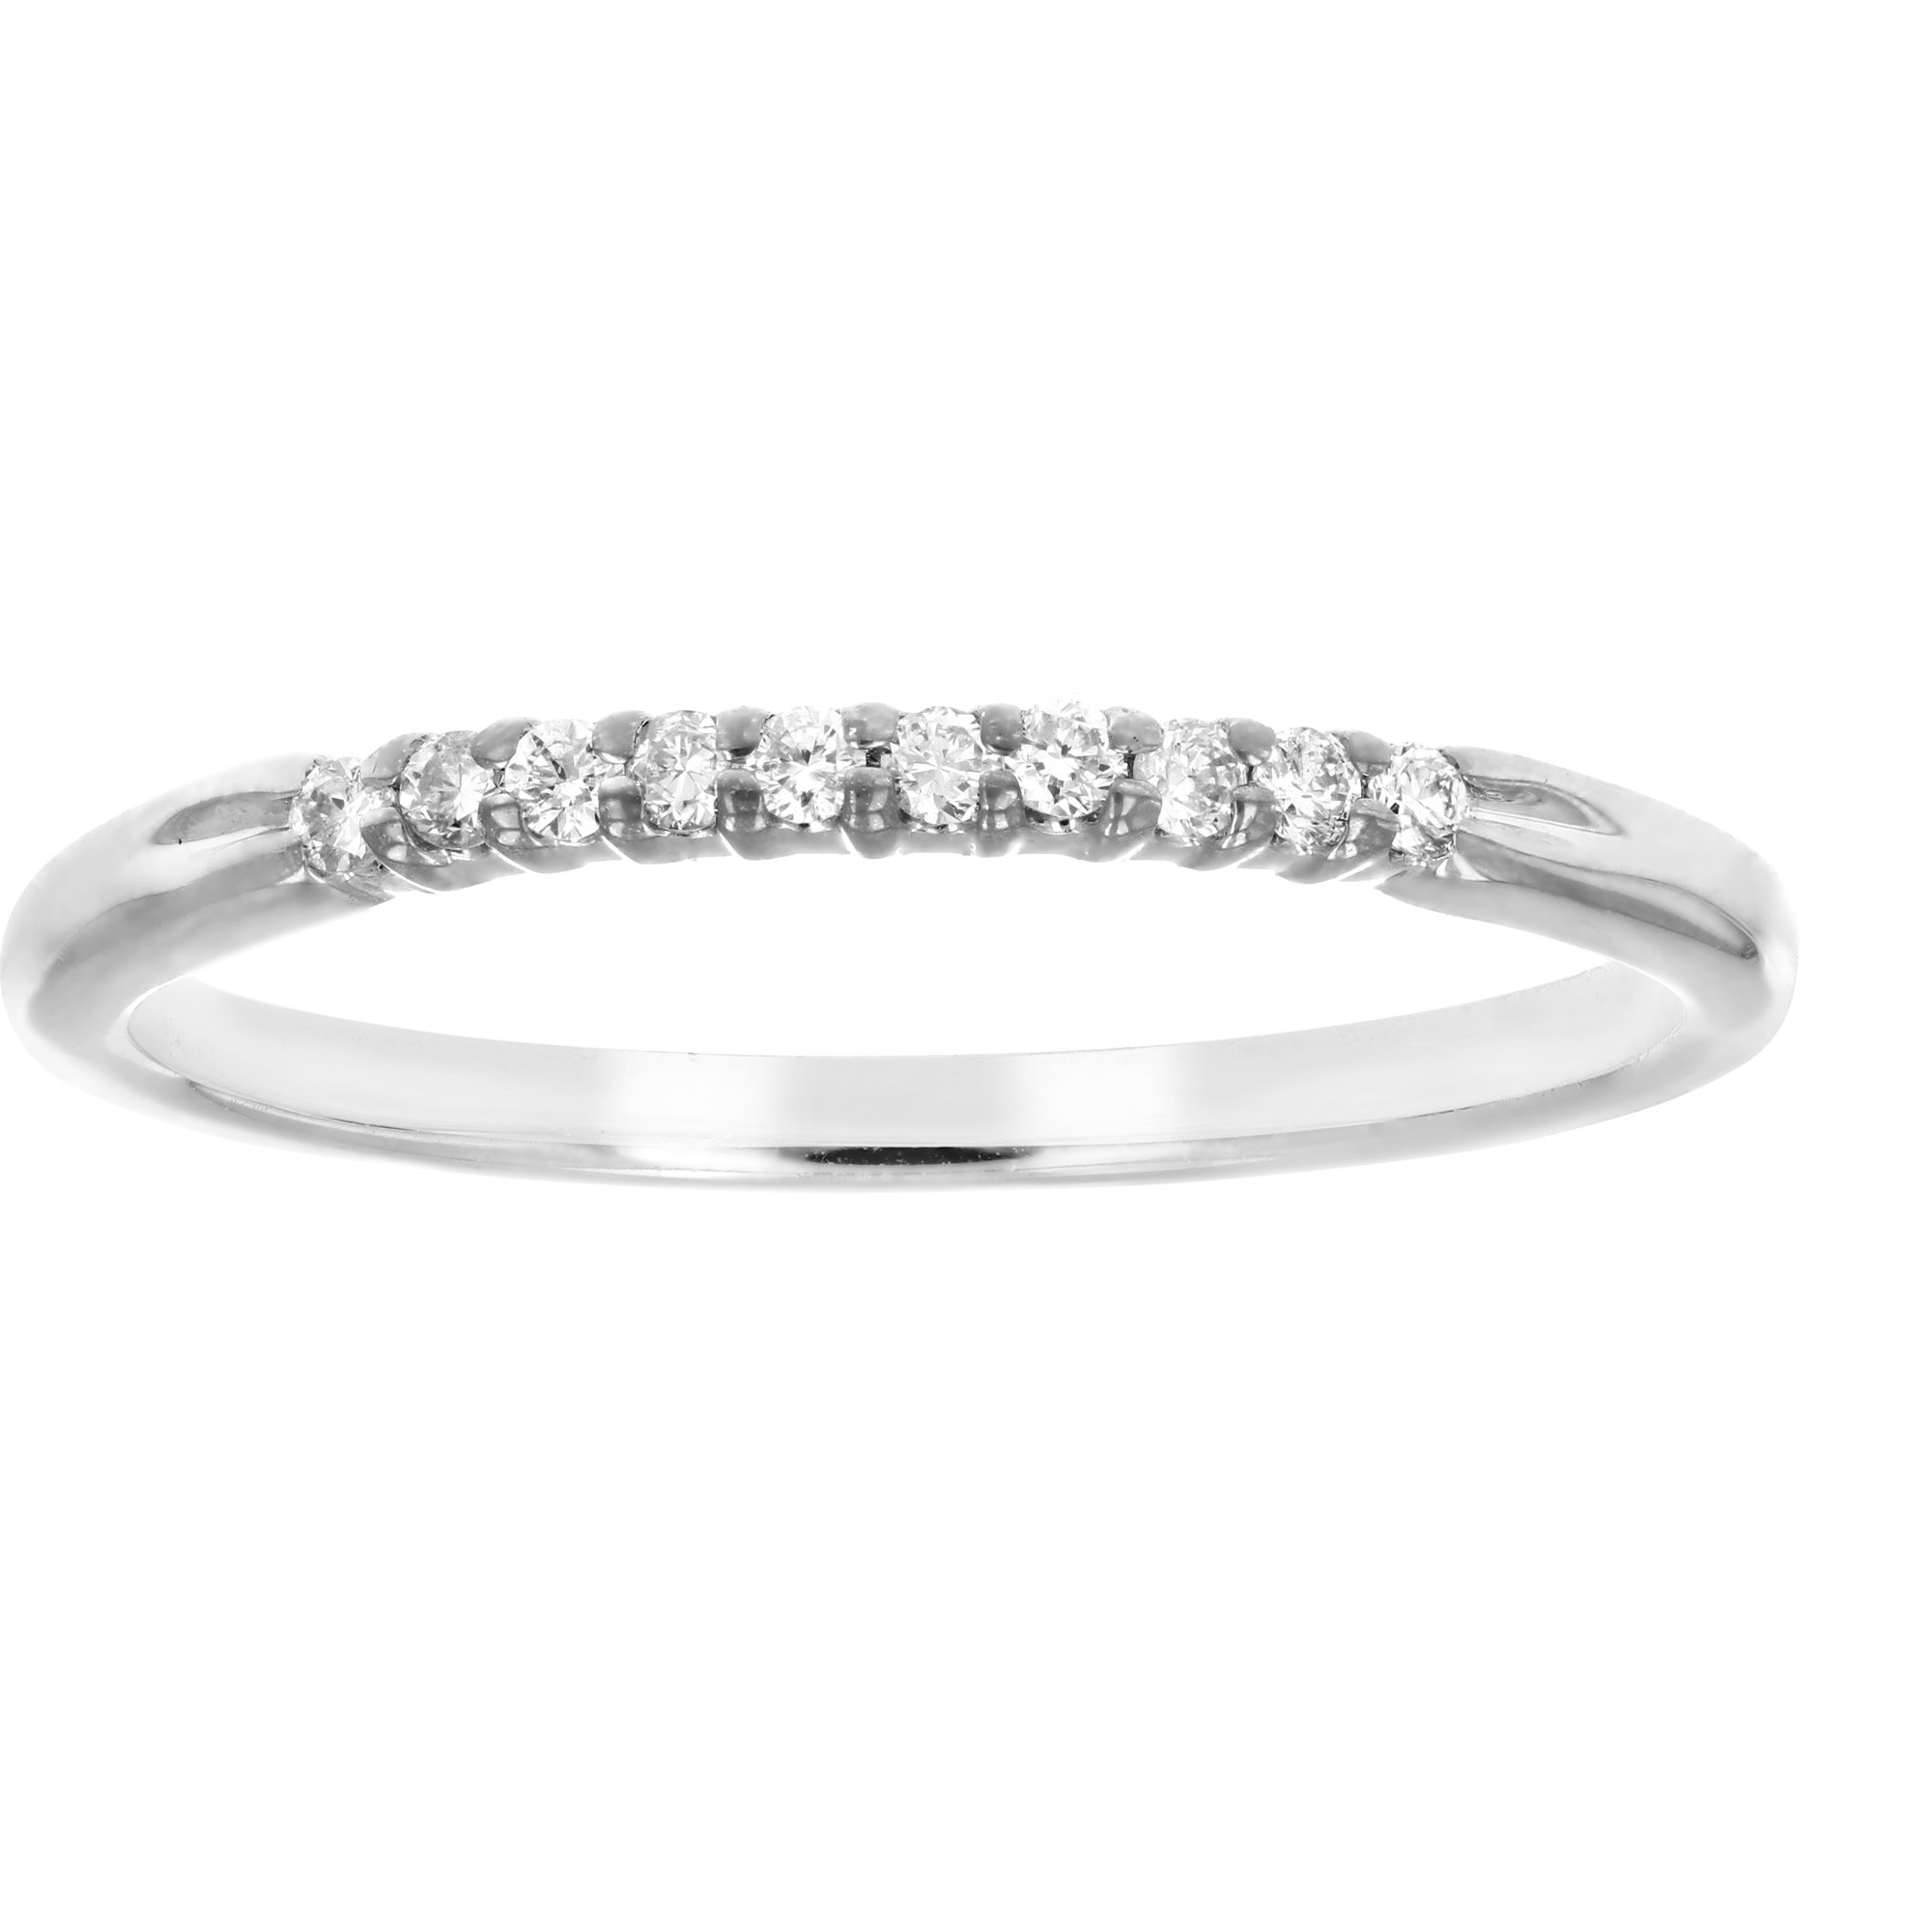 1/10 ctw Petite Diamond Wedding Band in 10K White Gold In Size 7 by Vir Jewels (Image #3)